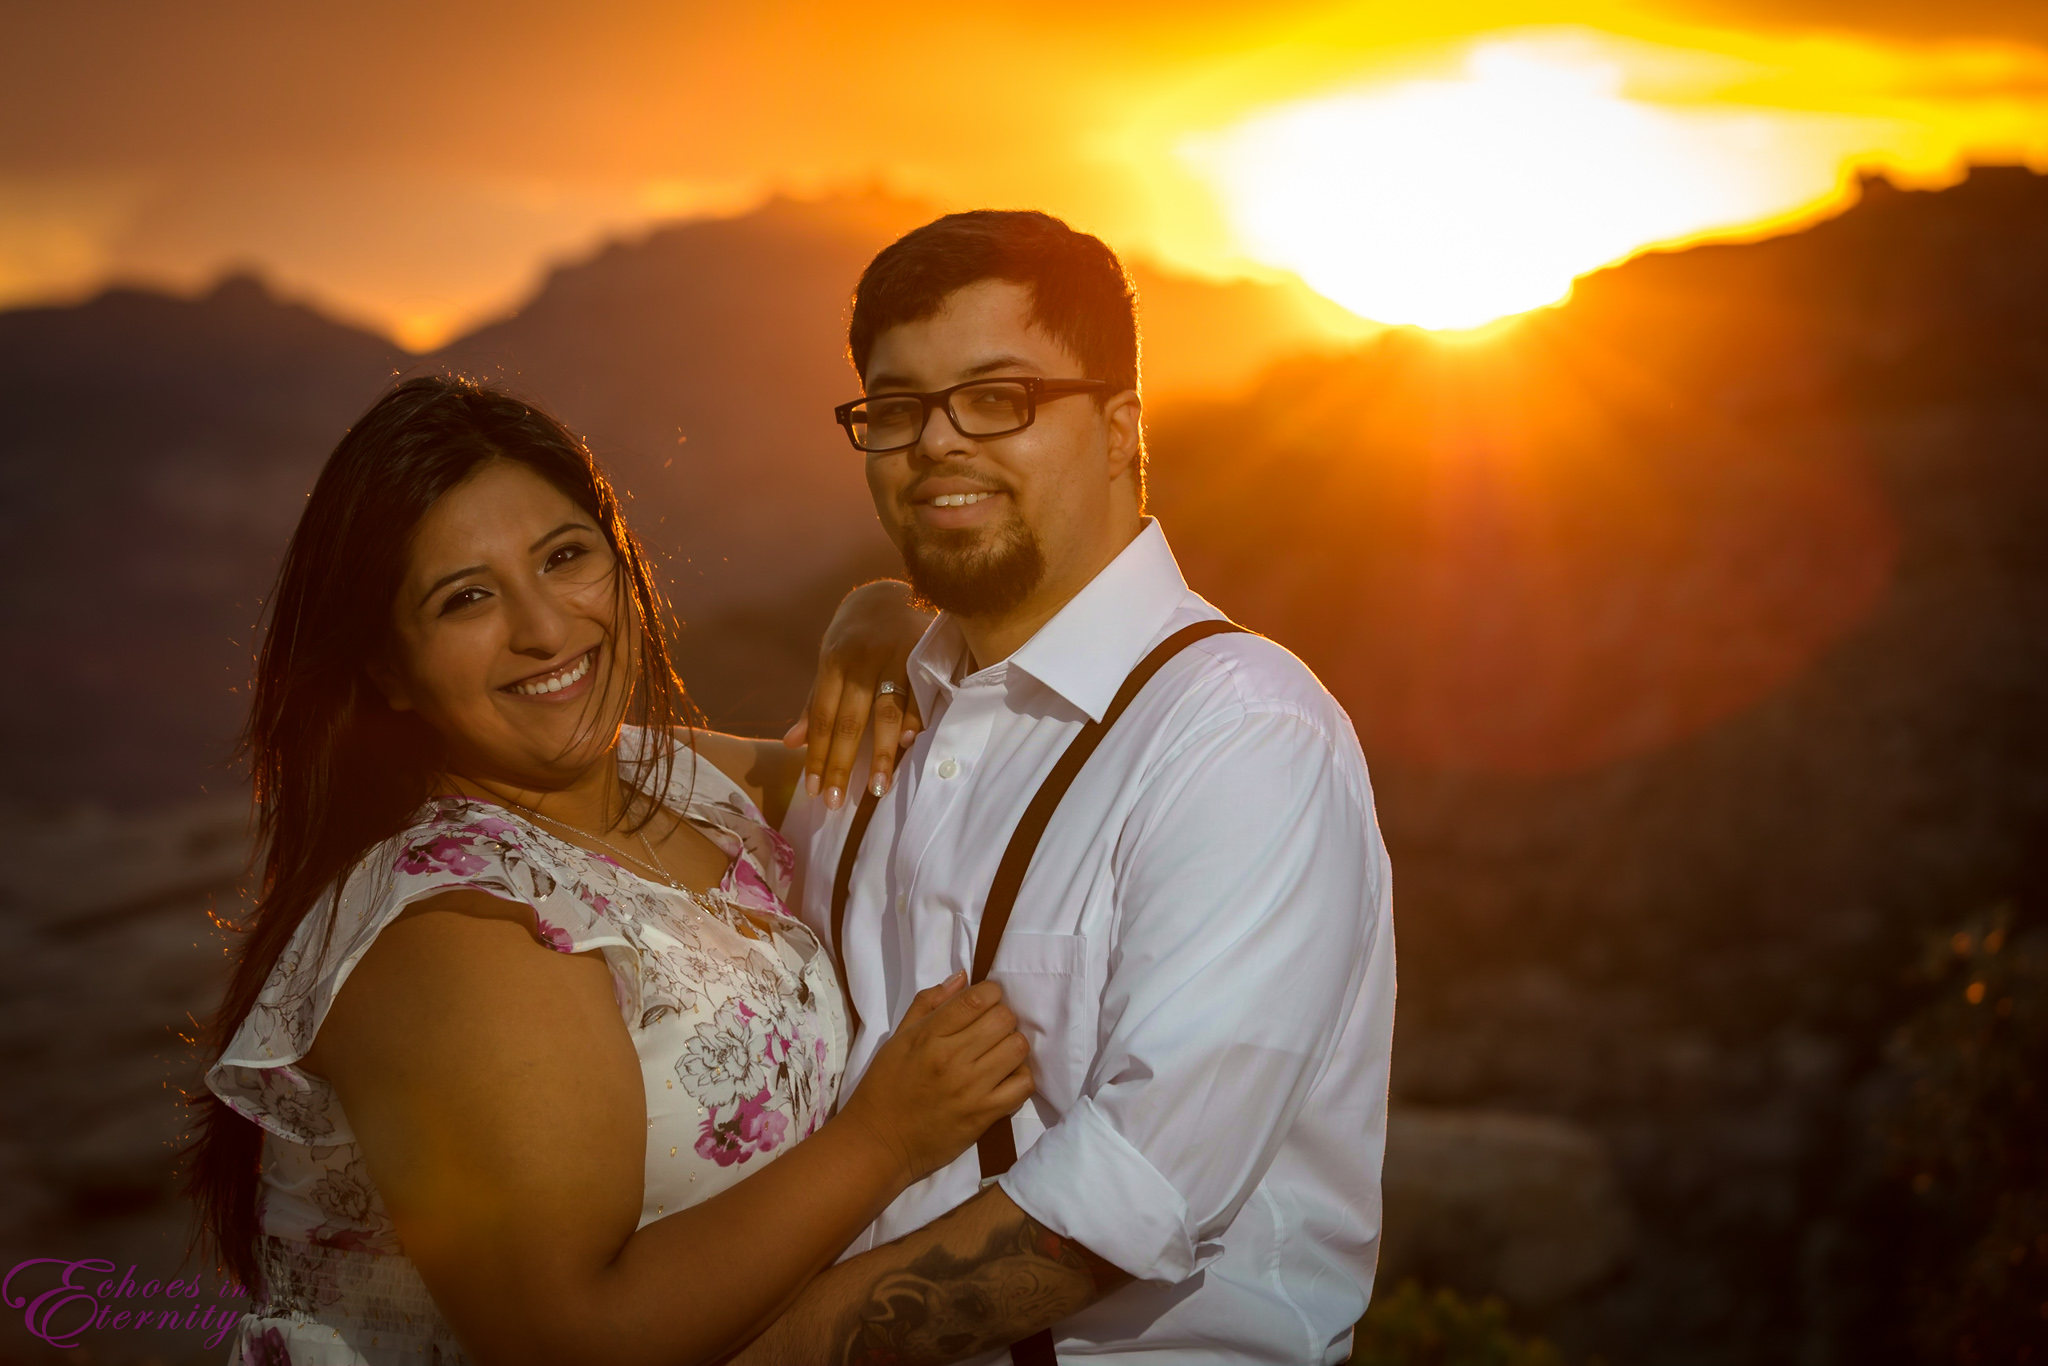 Zach and EJ Tucson Wedding and Engagement Photographer Mt. Lemmon Windy Point 23.jpg